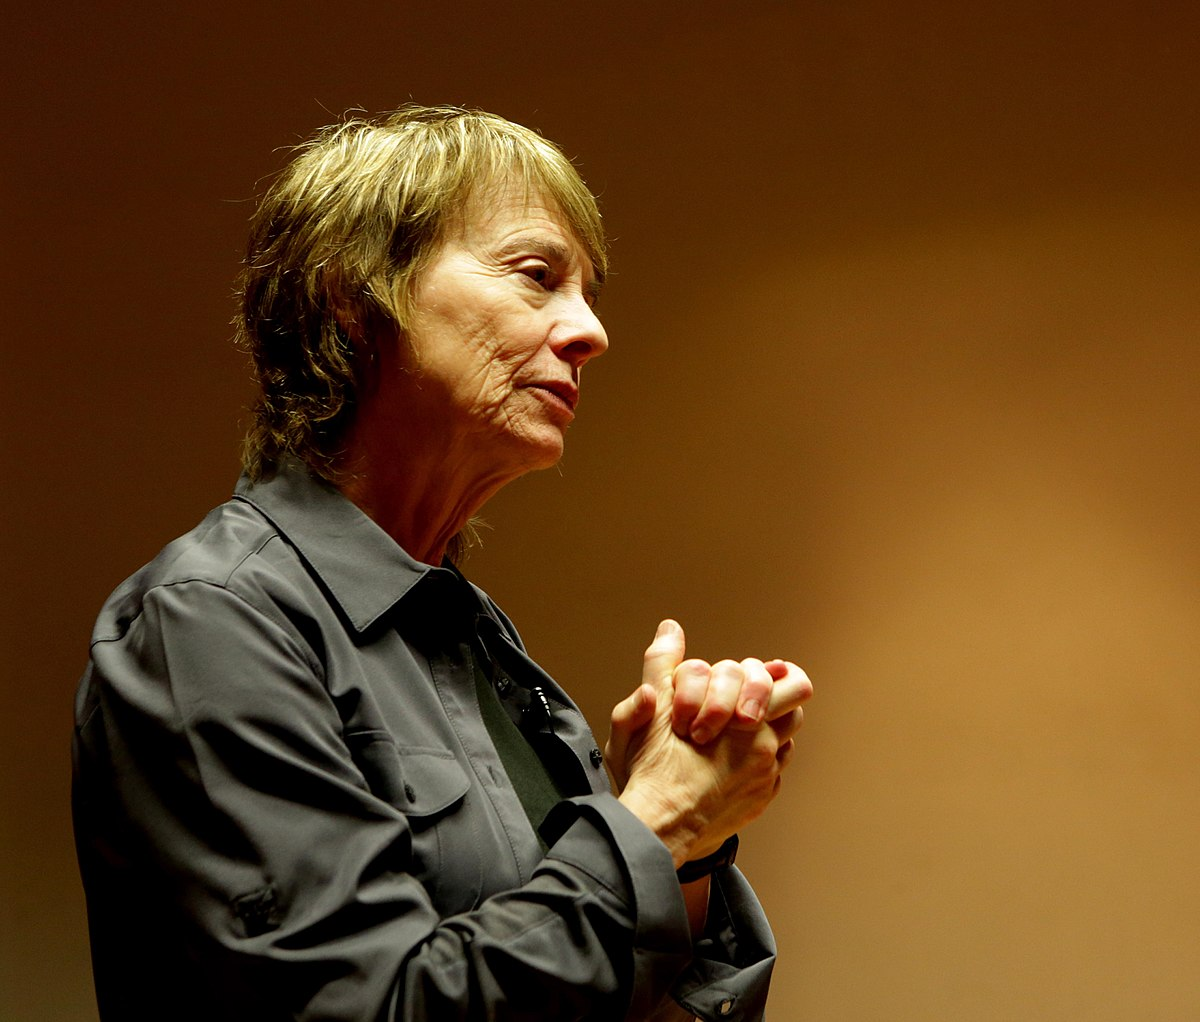 essays by camille paglia Sex, art, and american culture has 1,154 ratings and 88 reviews edward said: in her lecture at mit in 1991, camille paglia remarked at the outset tha.